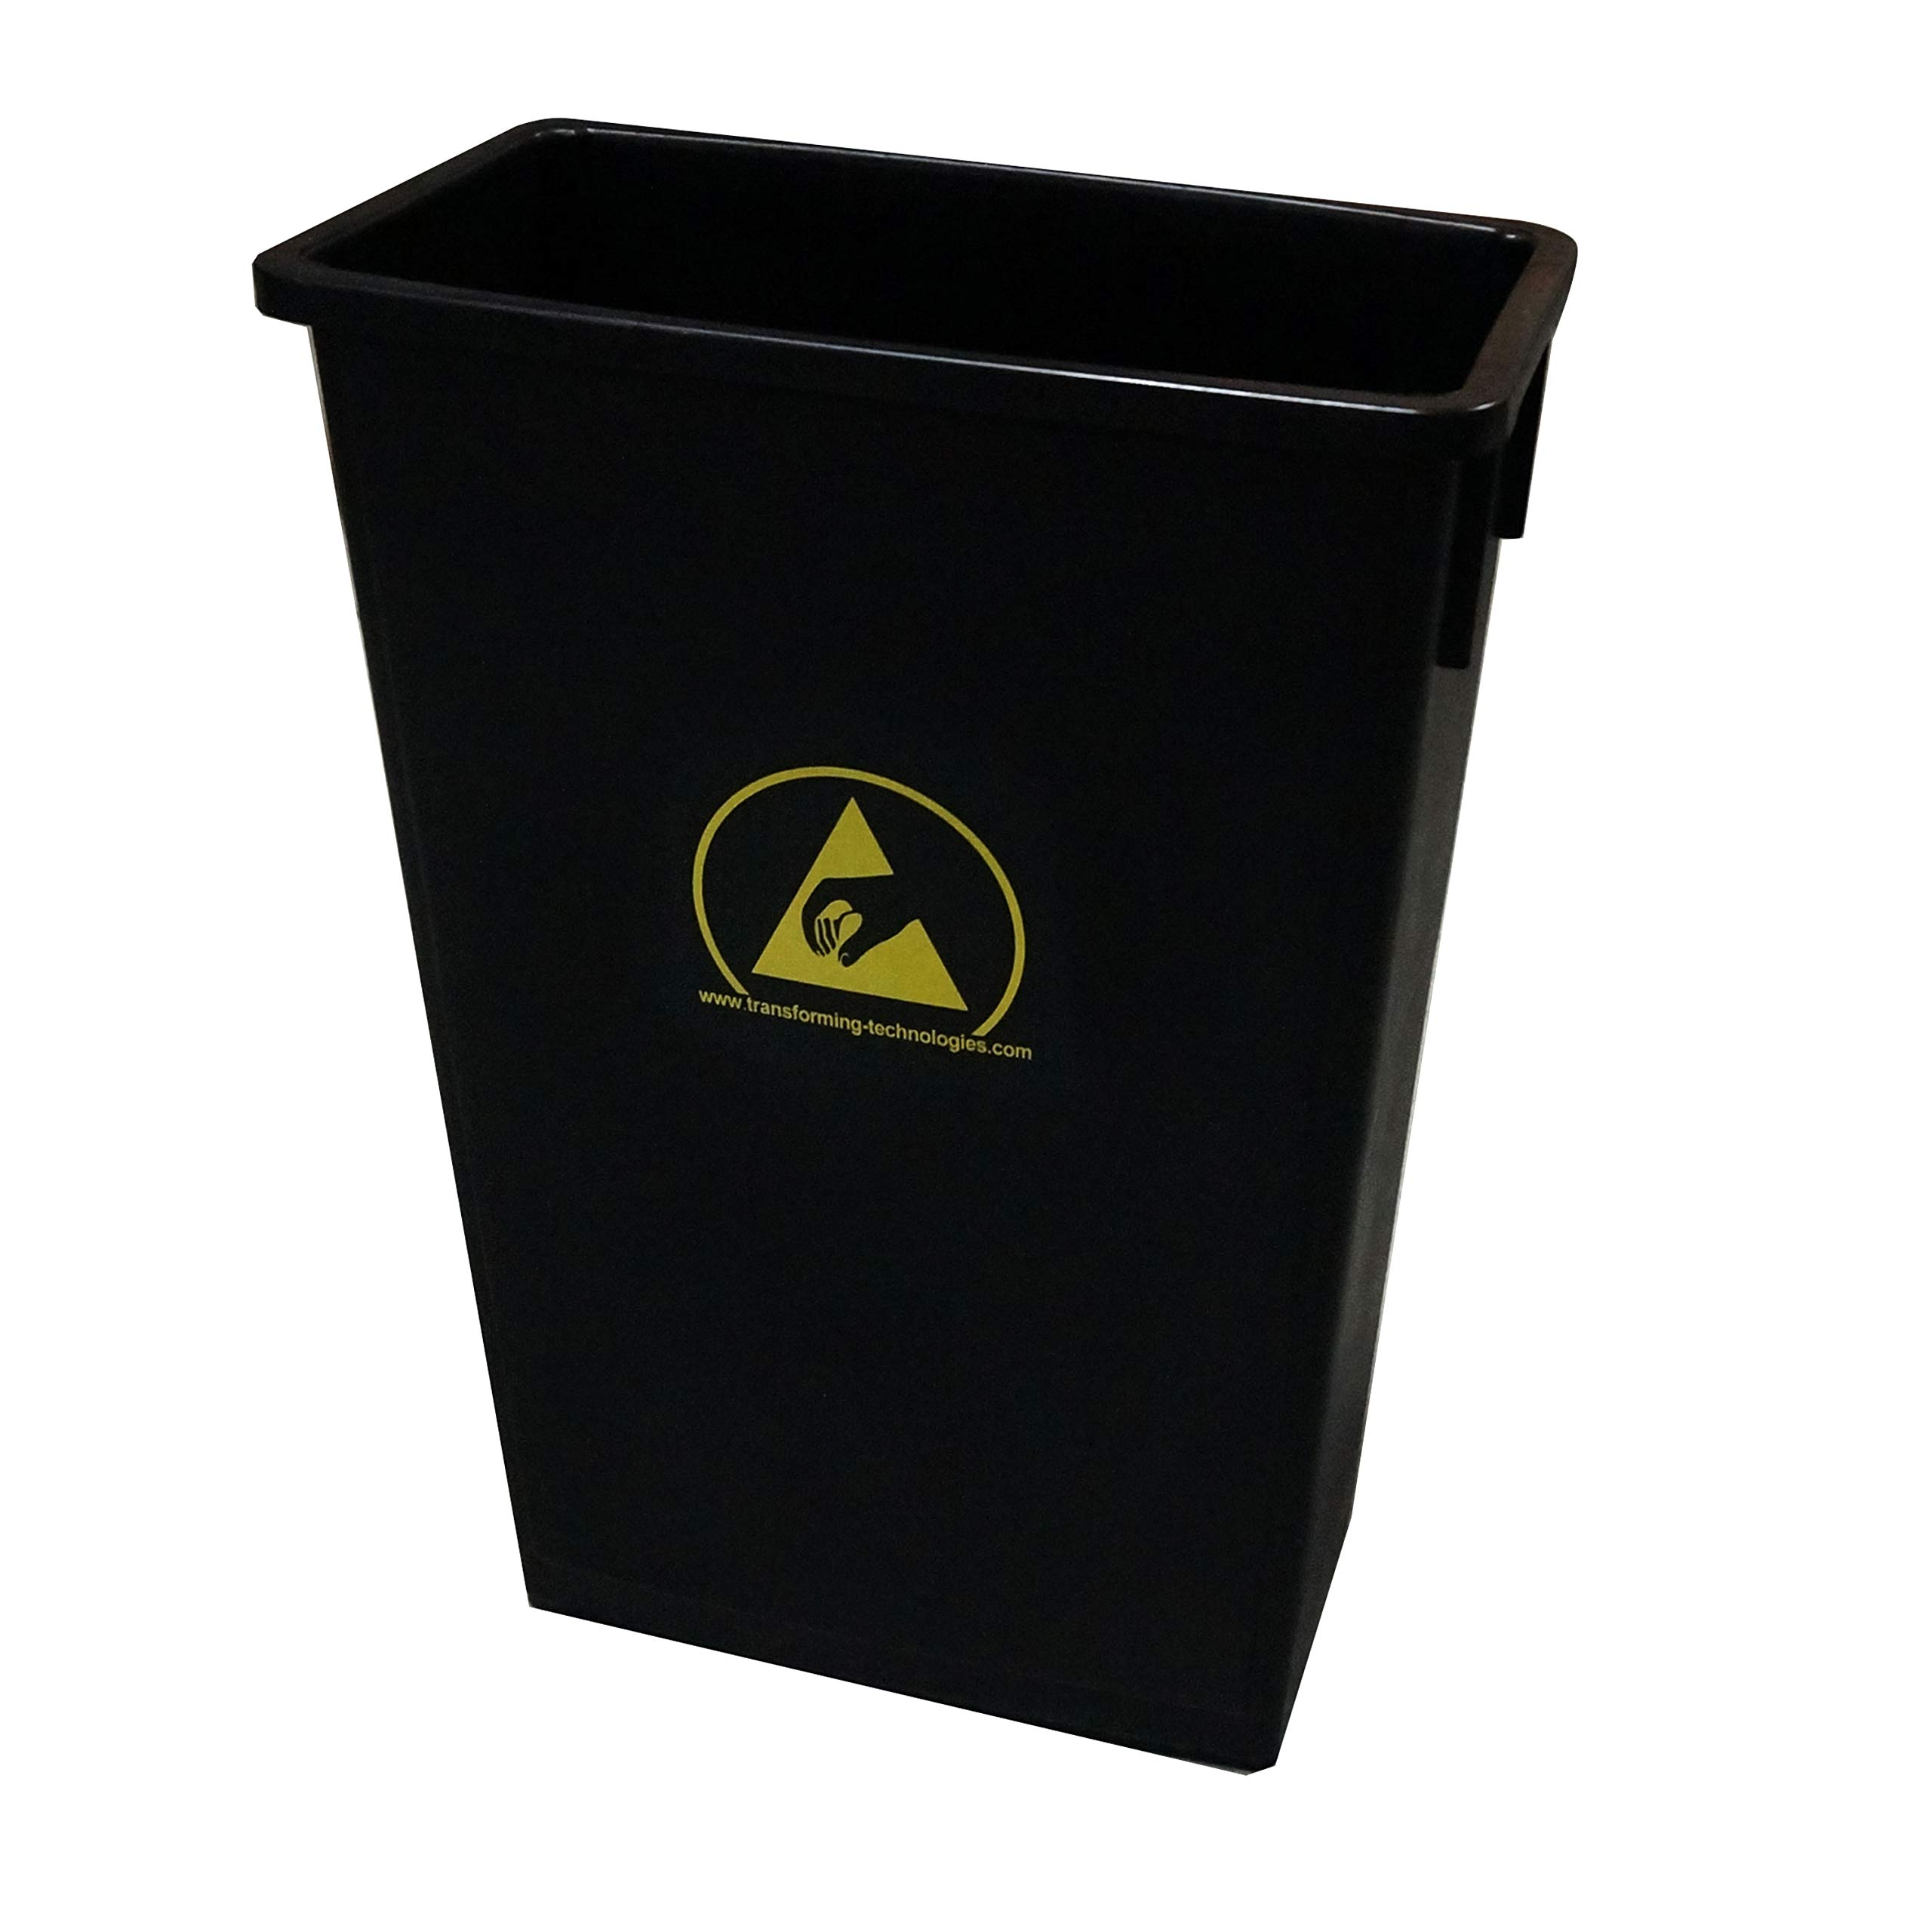 Static Care Carbon Loaded ESD Waste Basket with Yellow ESD Symbol 22 Gallon Capacity